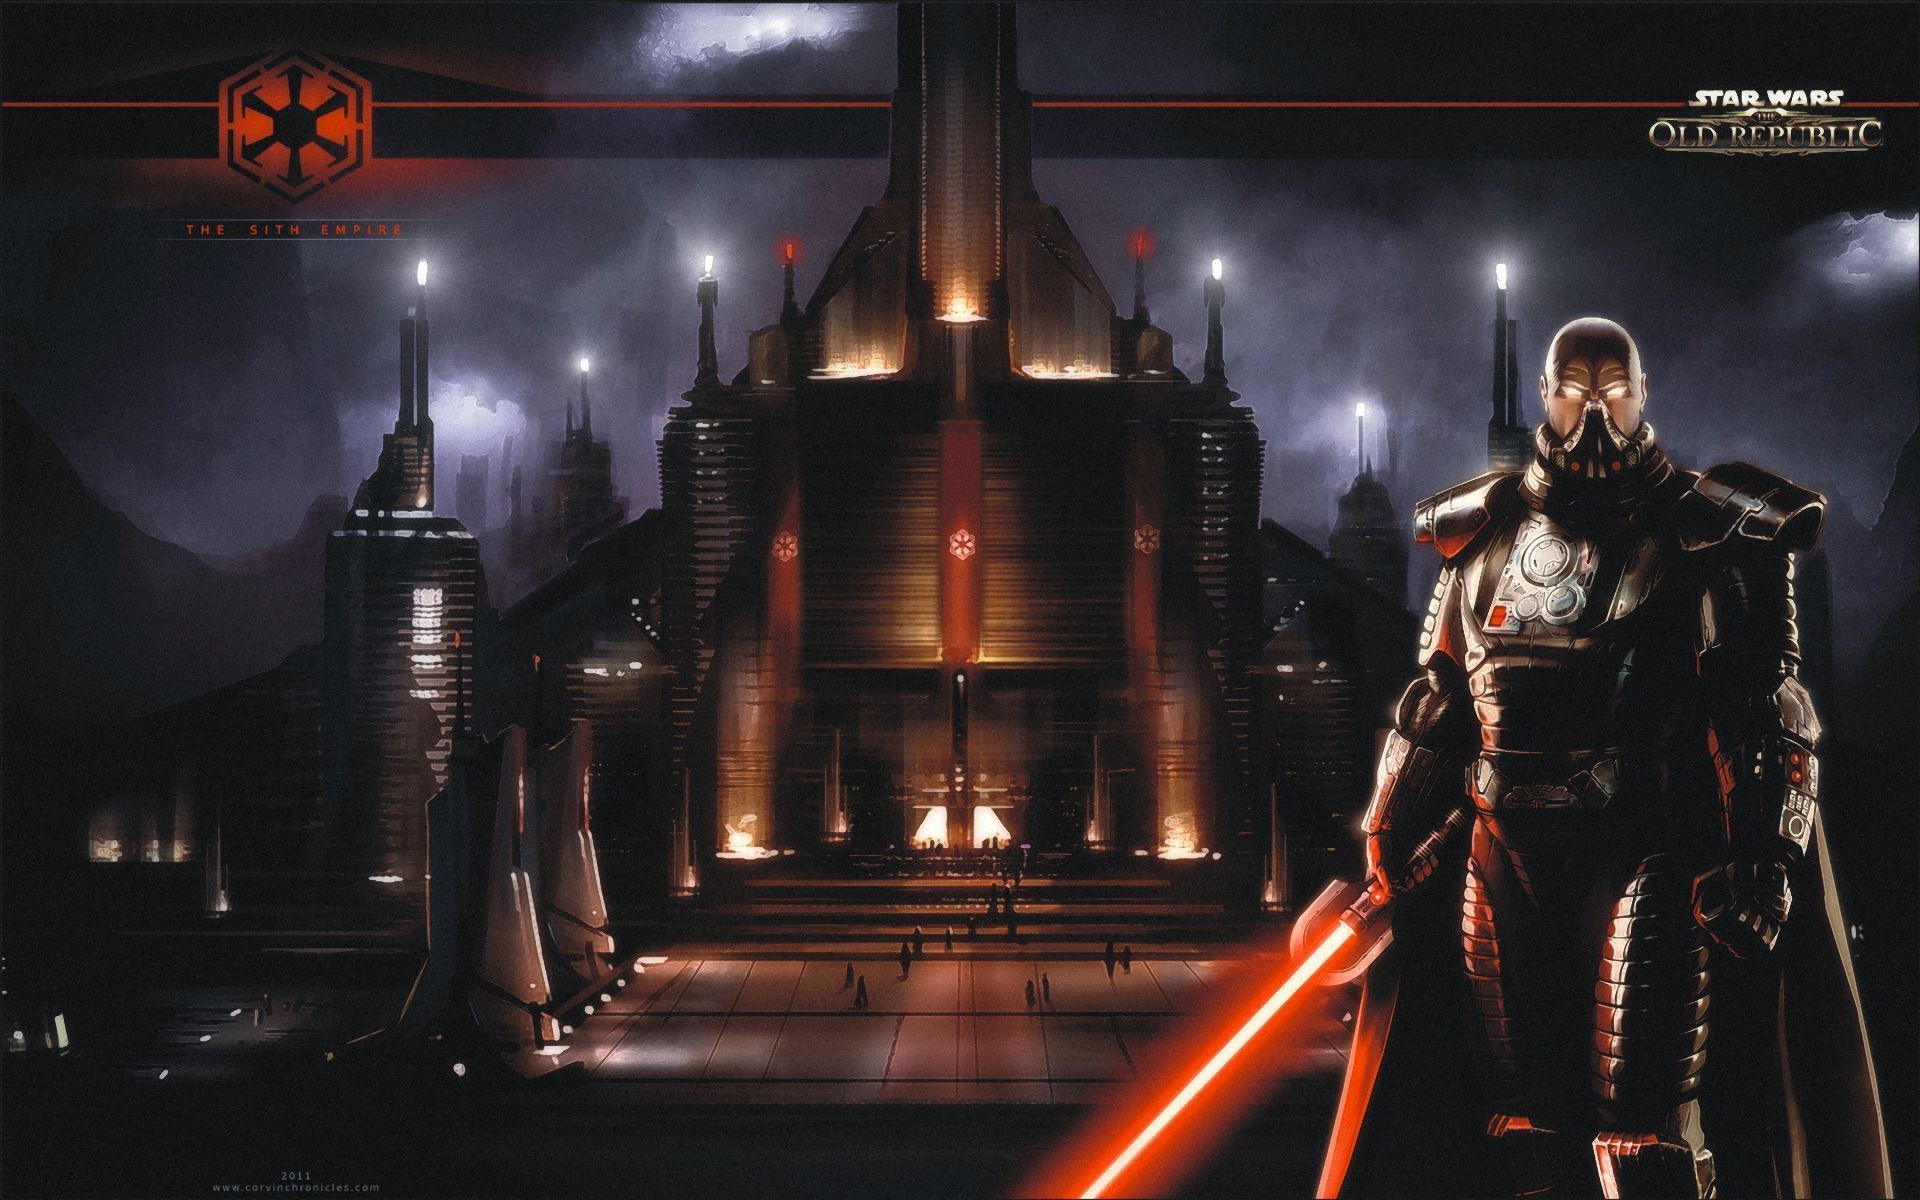 STAR WARS: The Old Republic – Sith / Republic Wallpapers